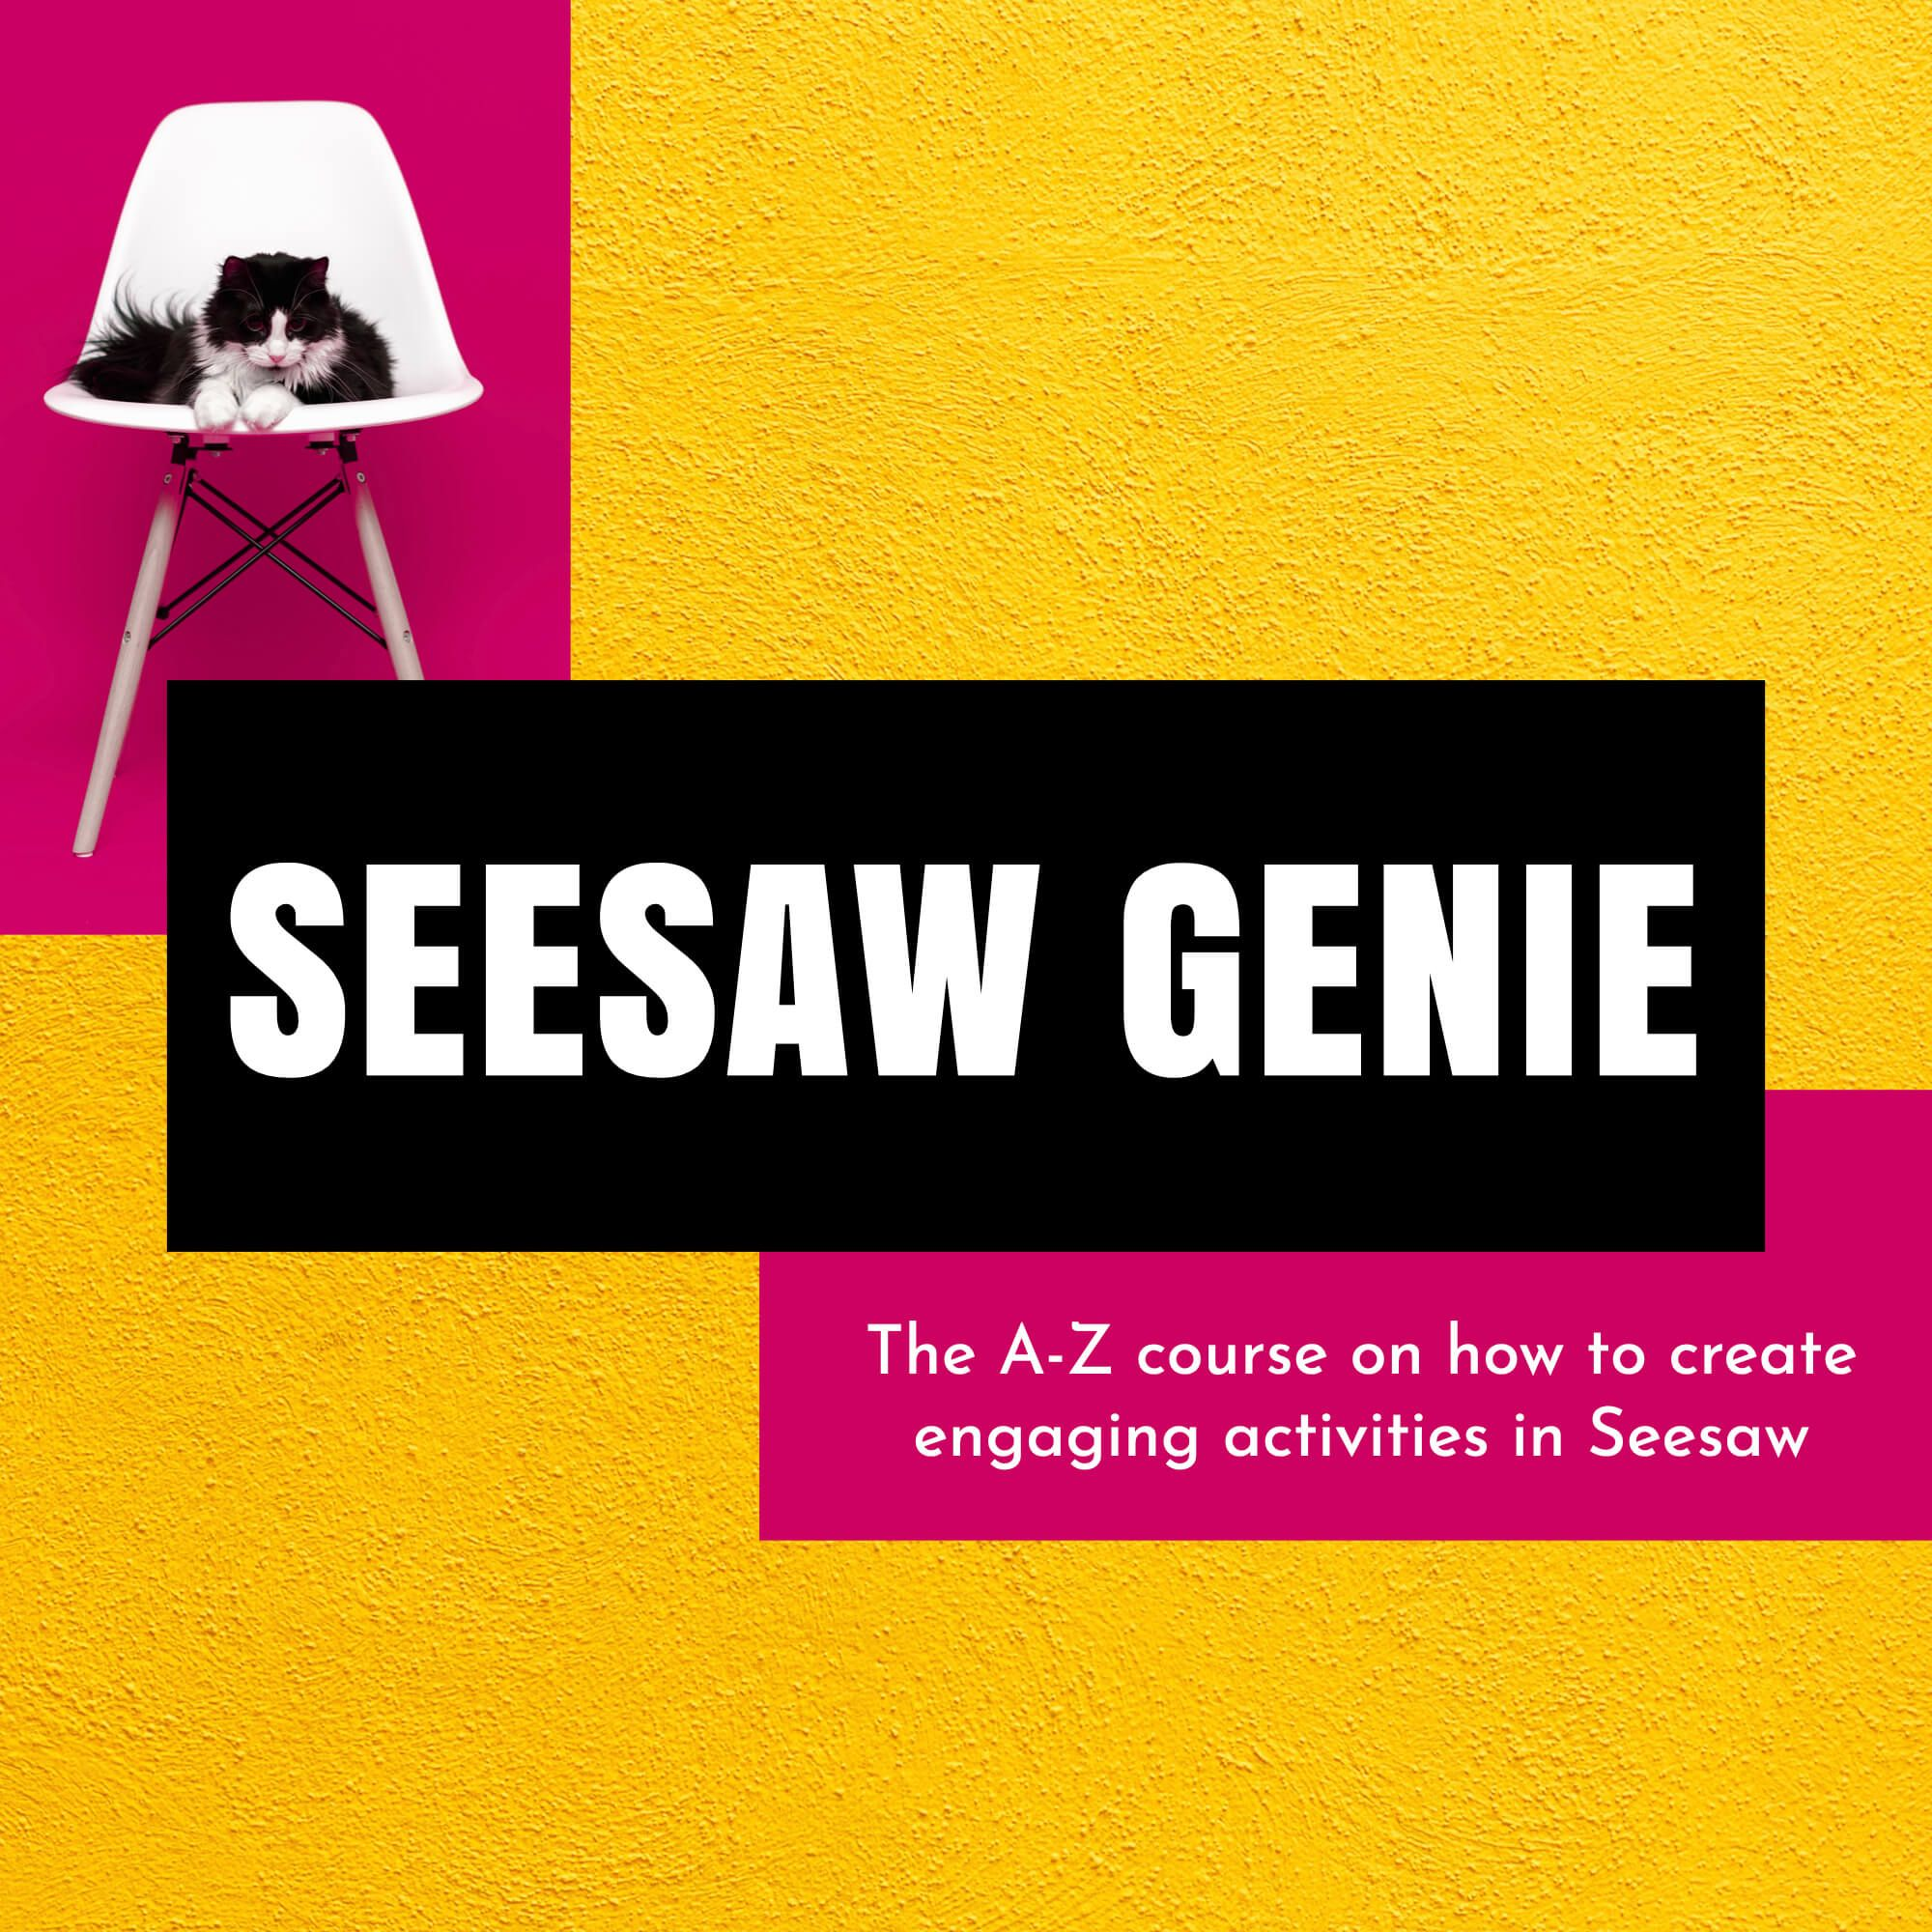 learn how to create engaging and interactive activities in Seesaw